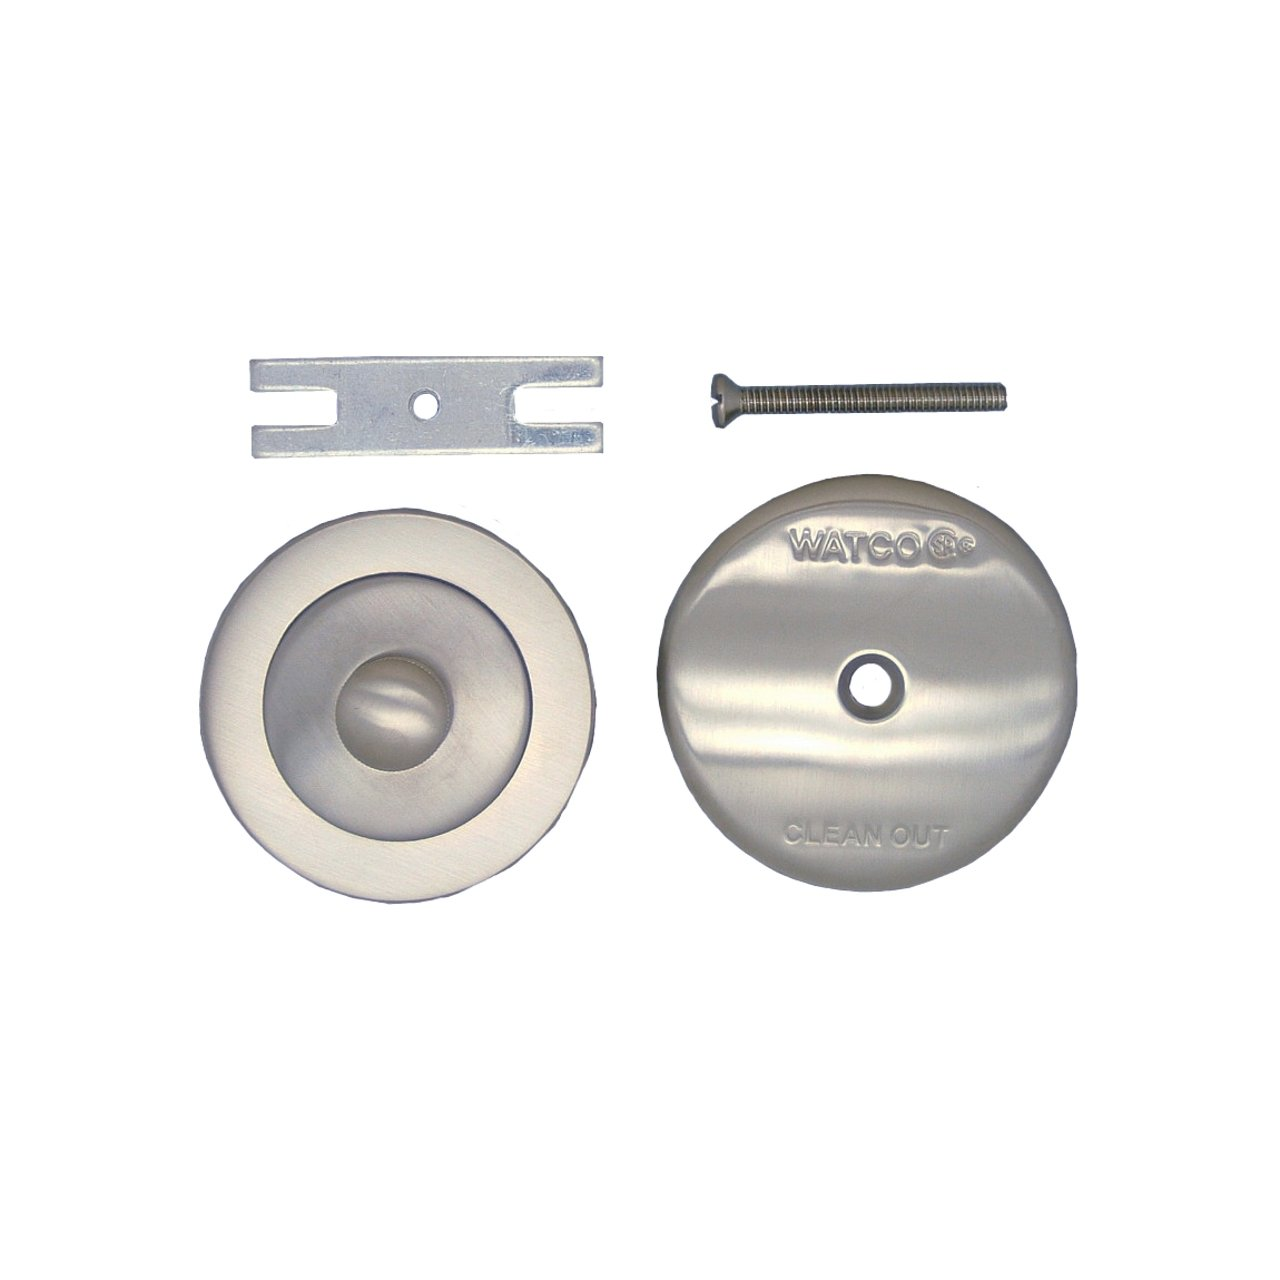 Watco Manufacturing 48400-CP NuFit Lift and Turn Trim Kit, Chrome Plated